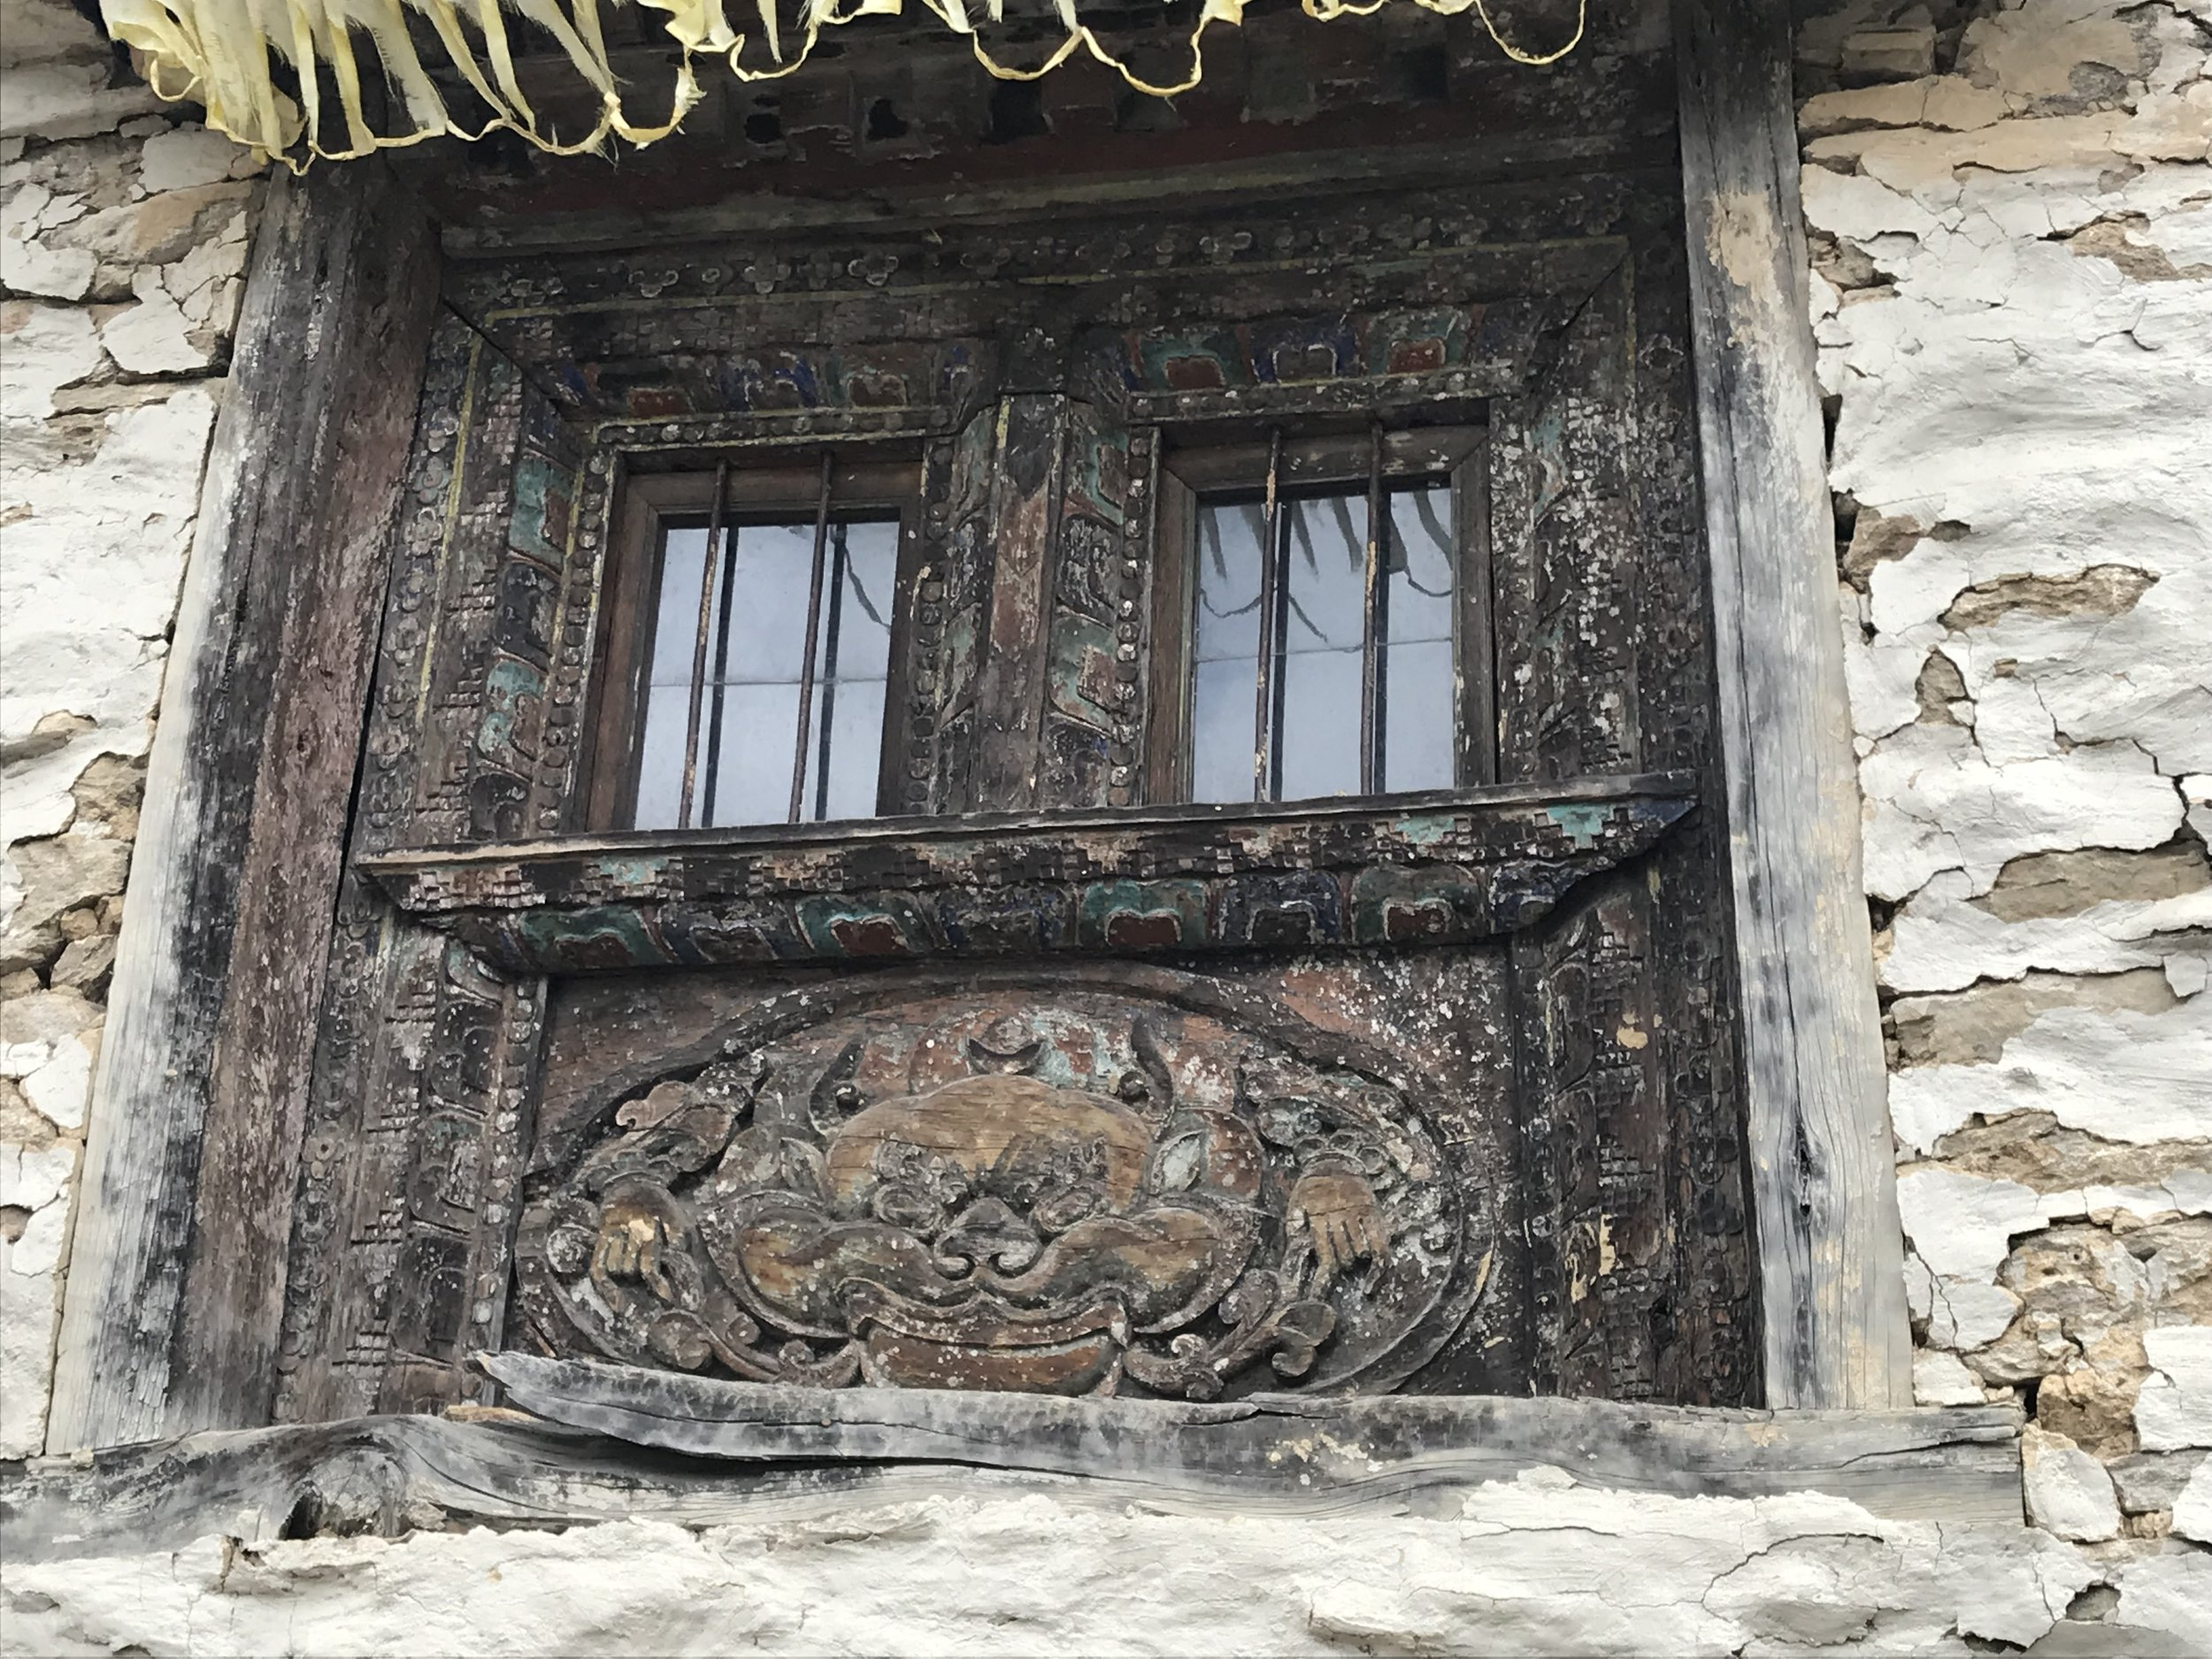 Detailed image of intricate carving of Gompa window